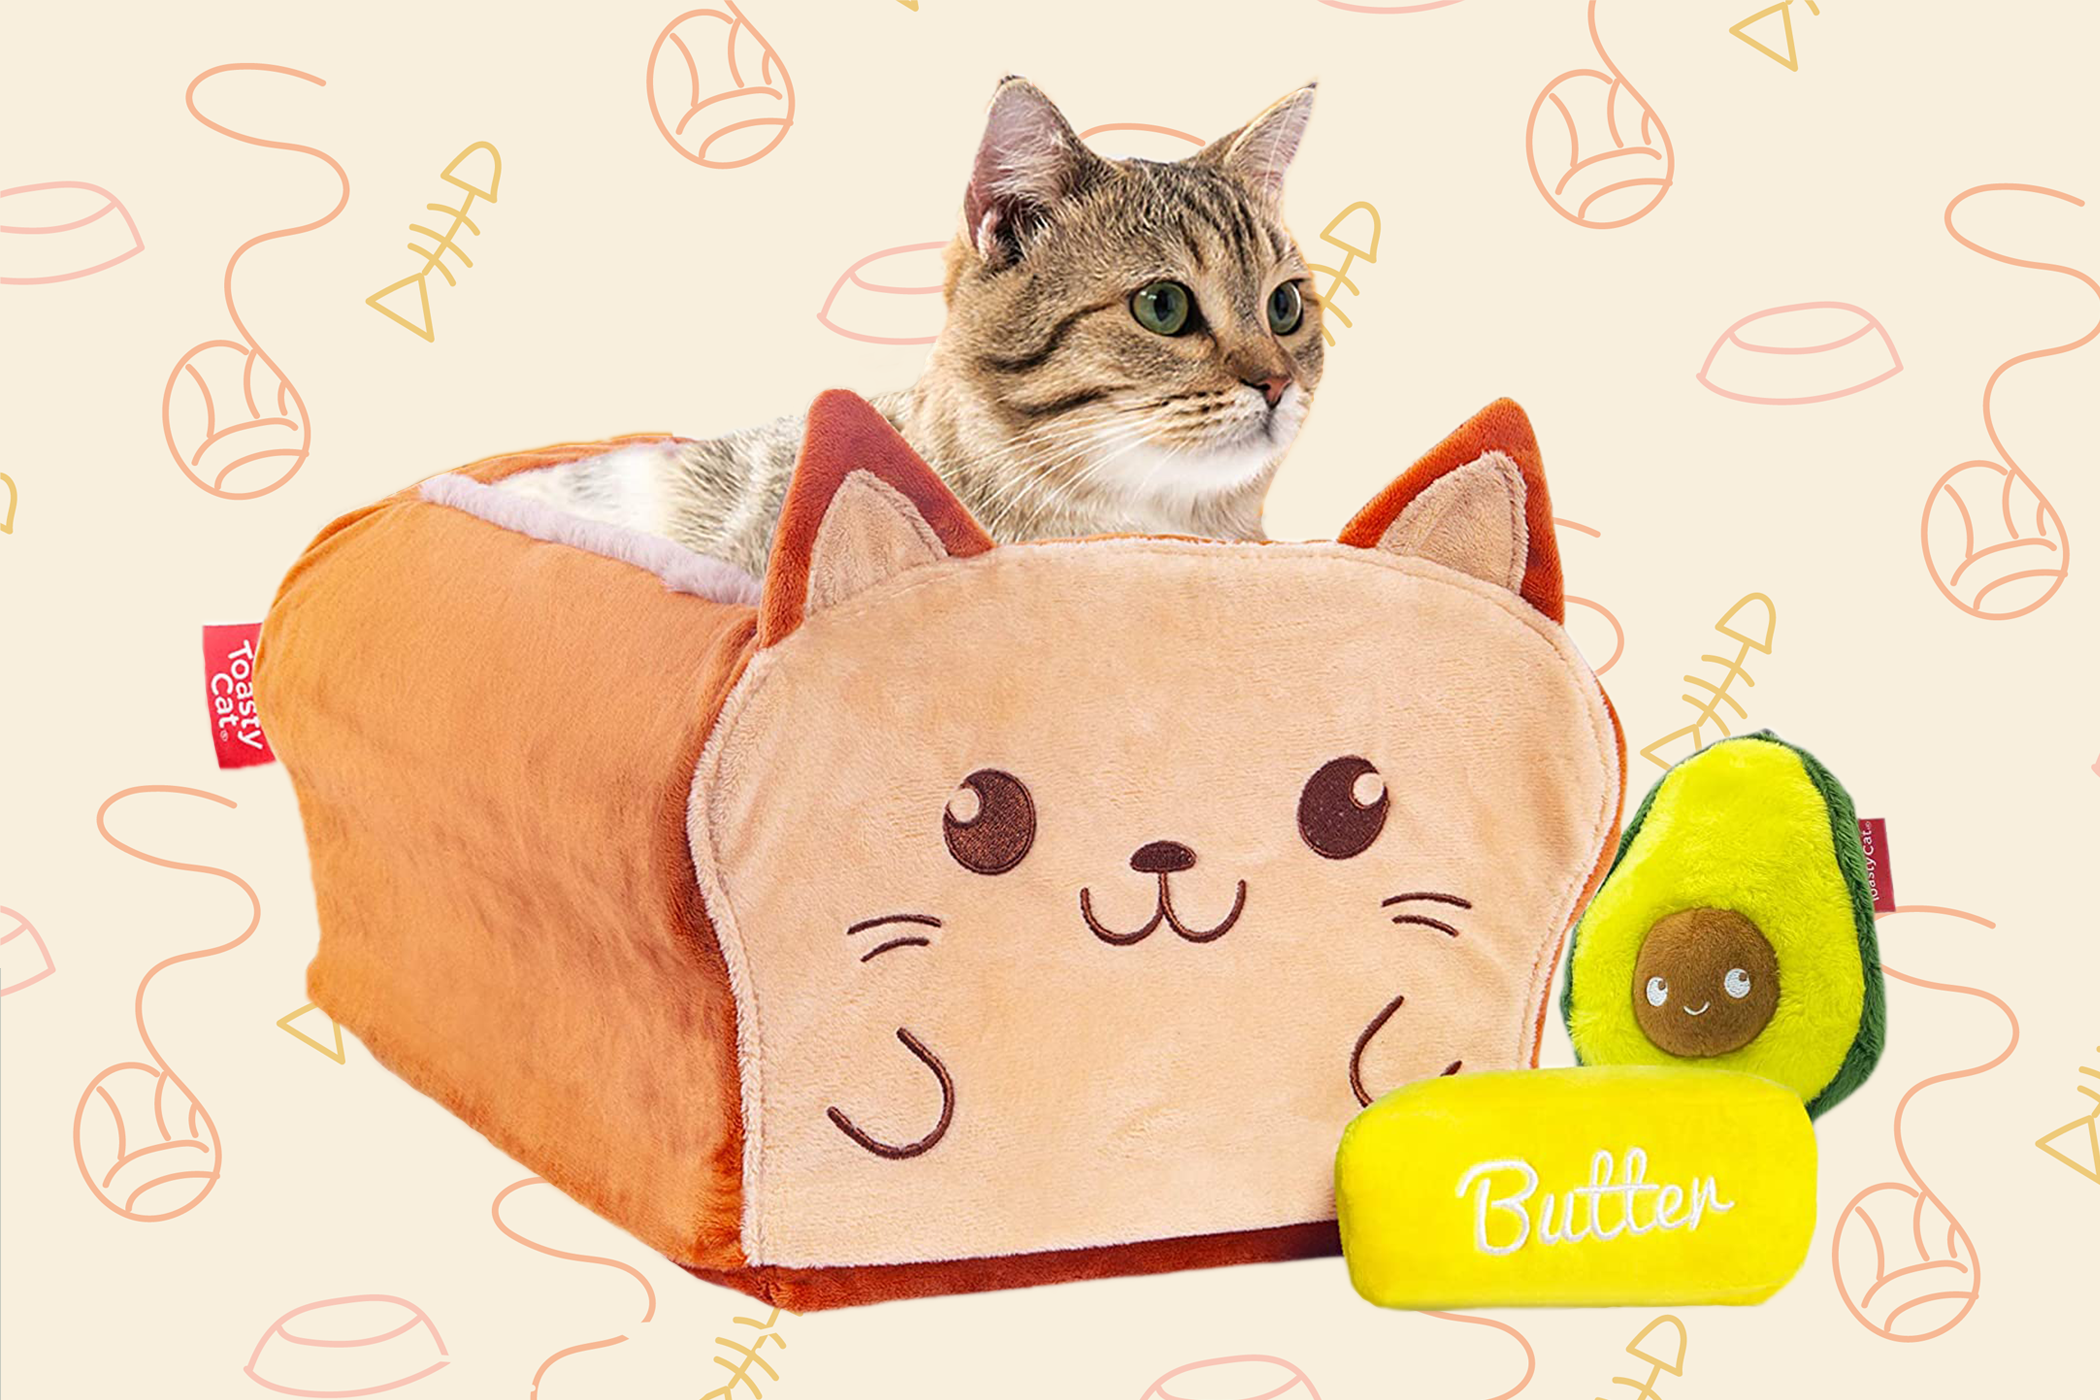 Product photo of Toasty Cat cat bed with cat inside featuring a loaf of bread with cartoon cat face and extra butter and avocado toys